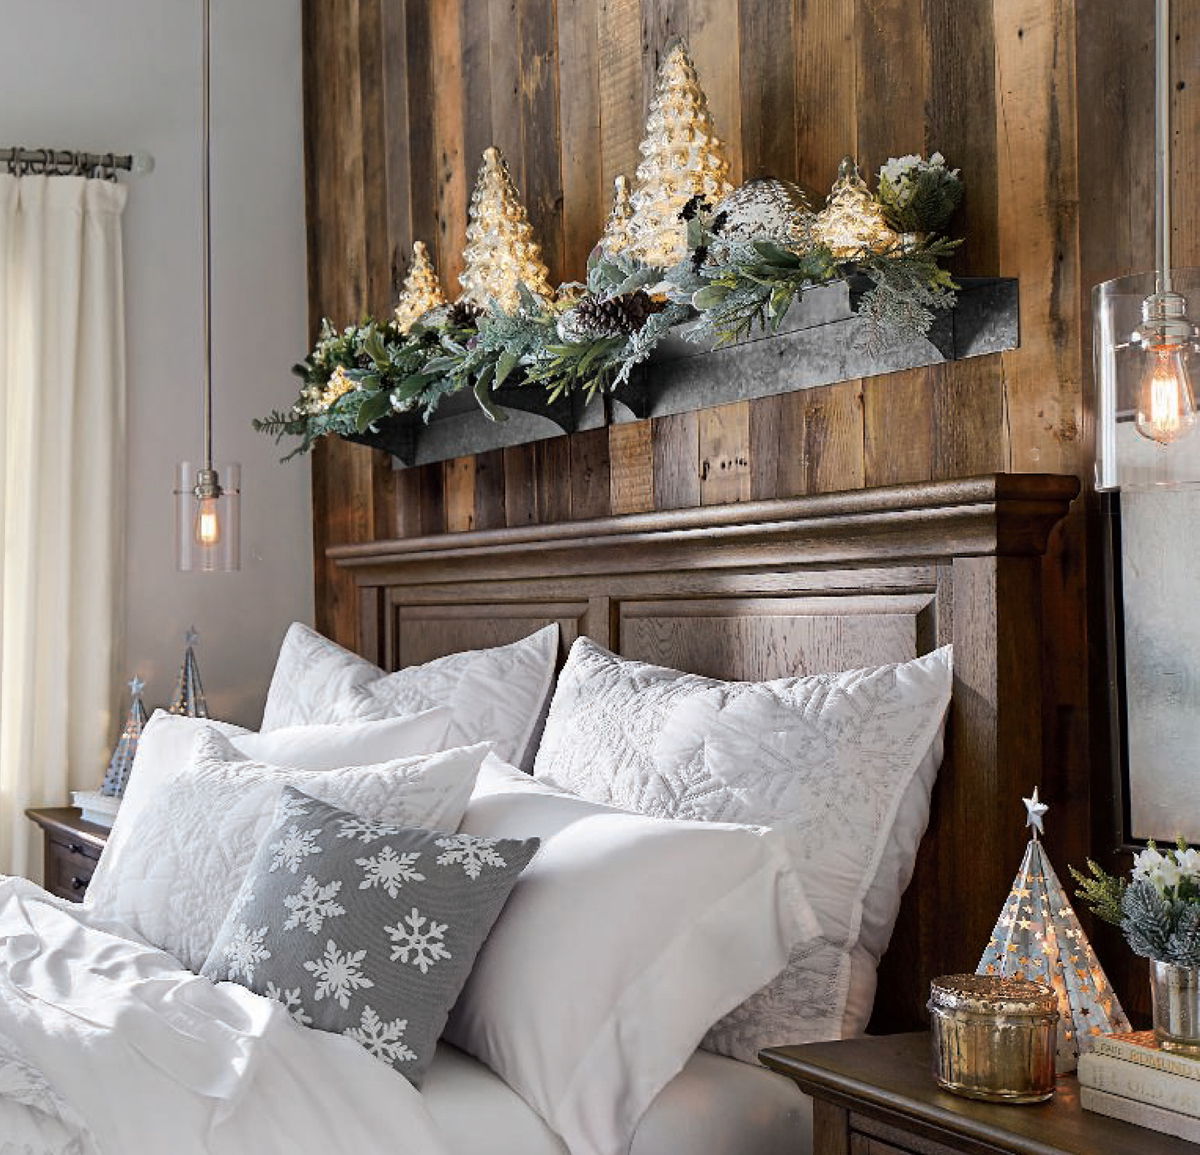 Bedroom Decorating Ideas: Rustic Christmas Decorating Ideas